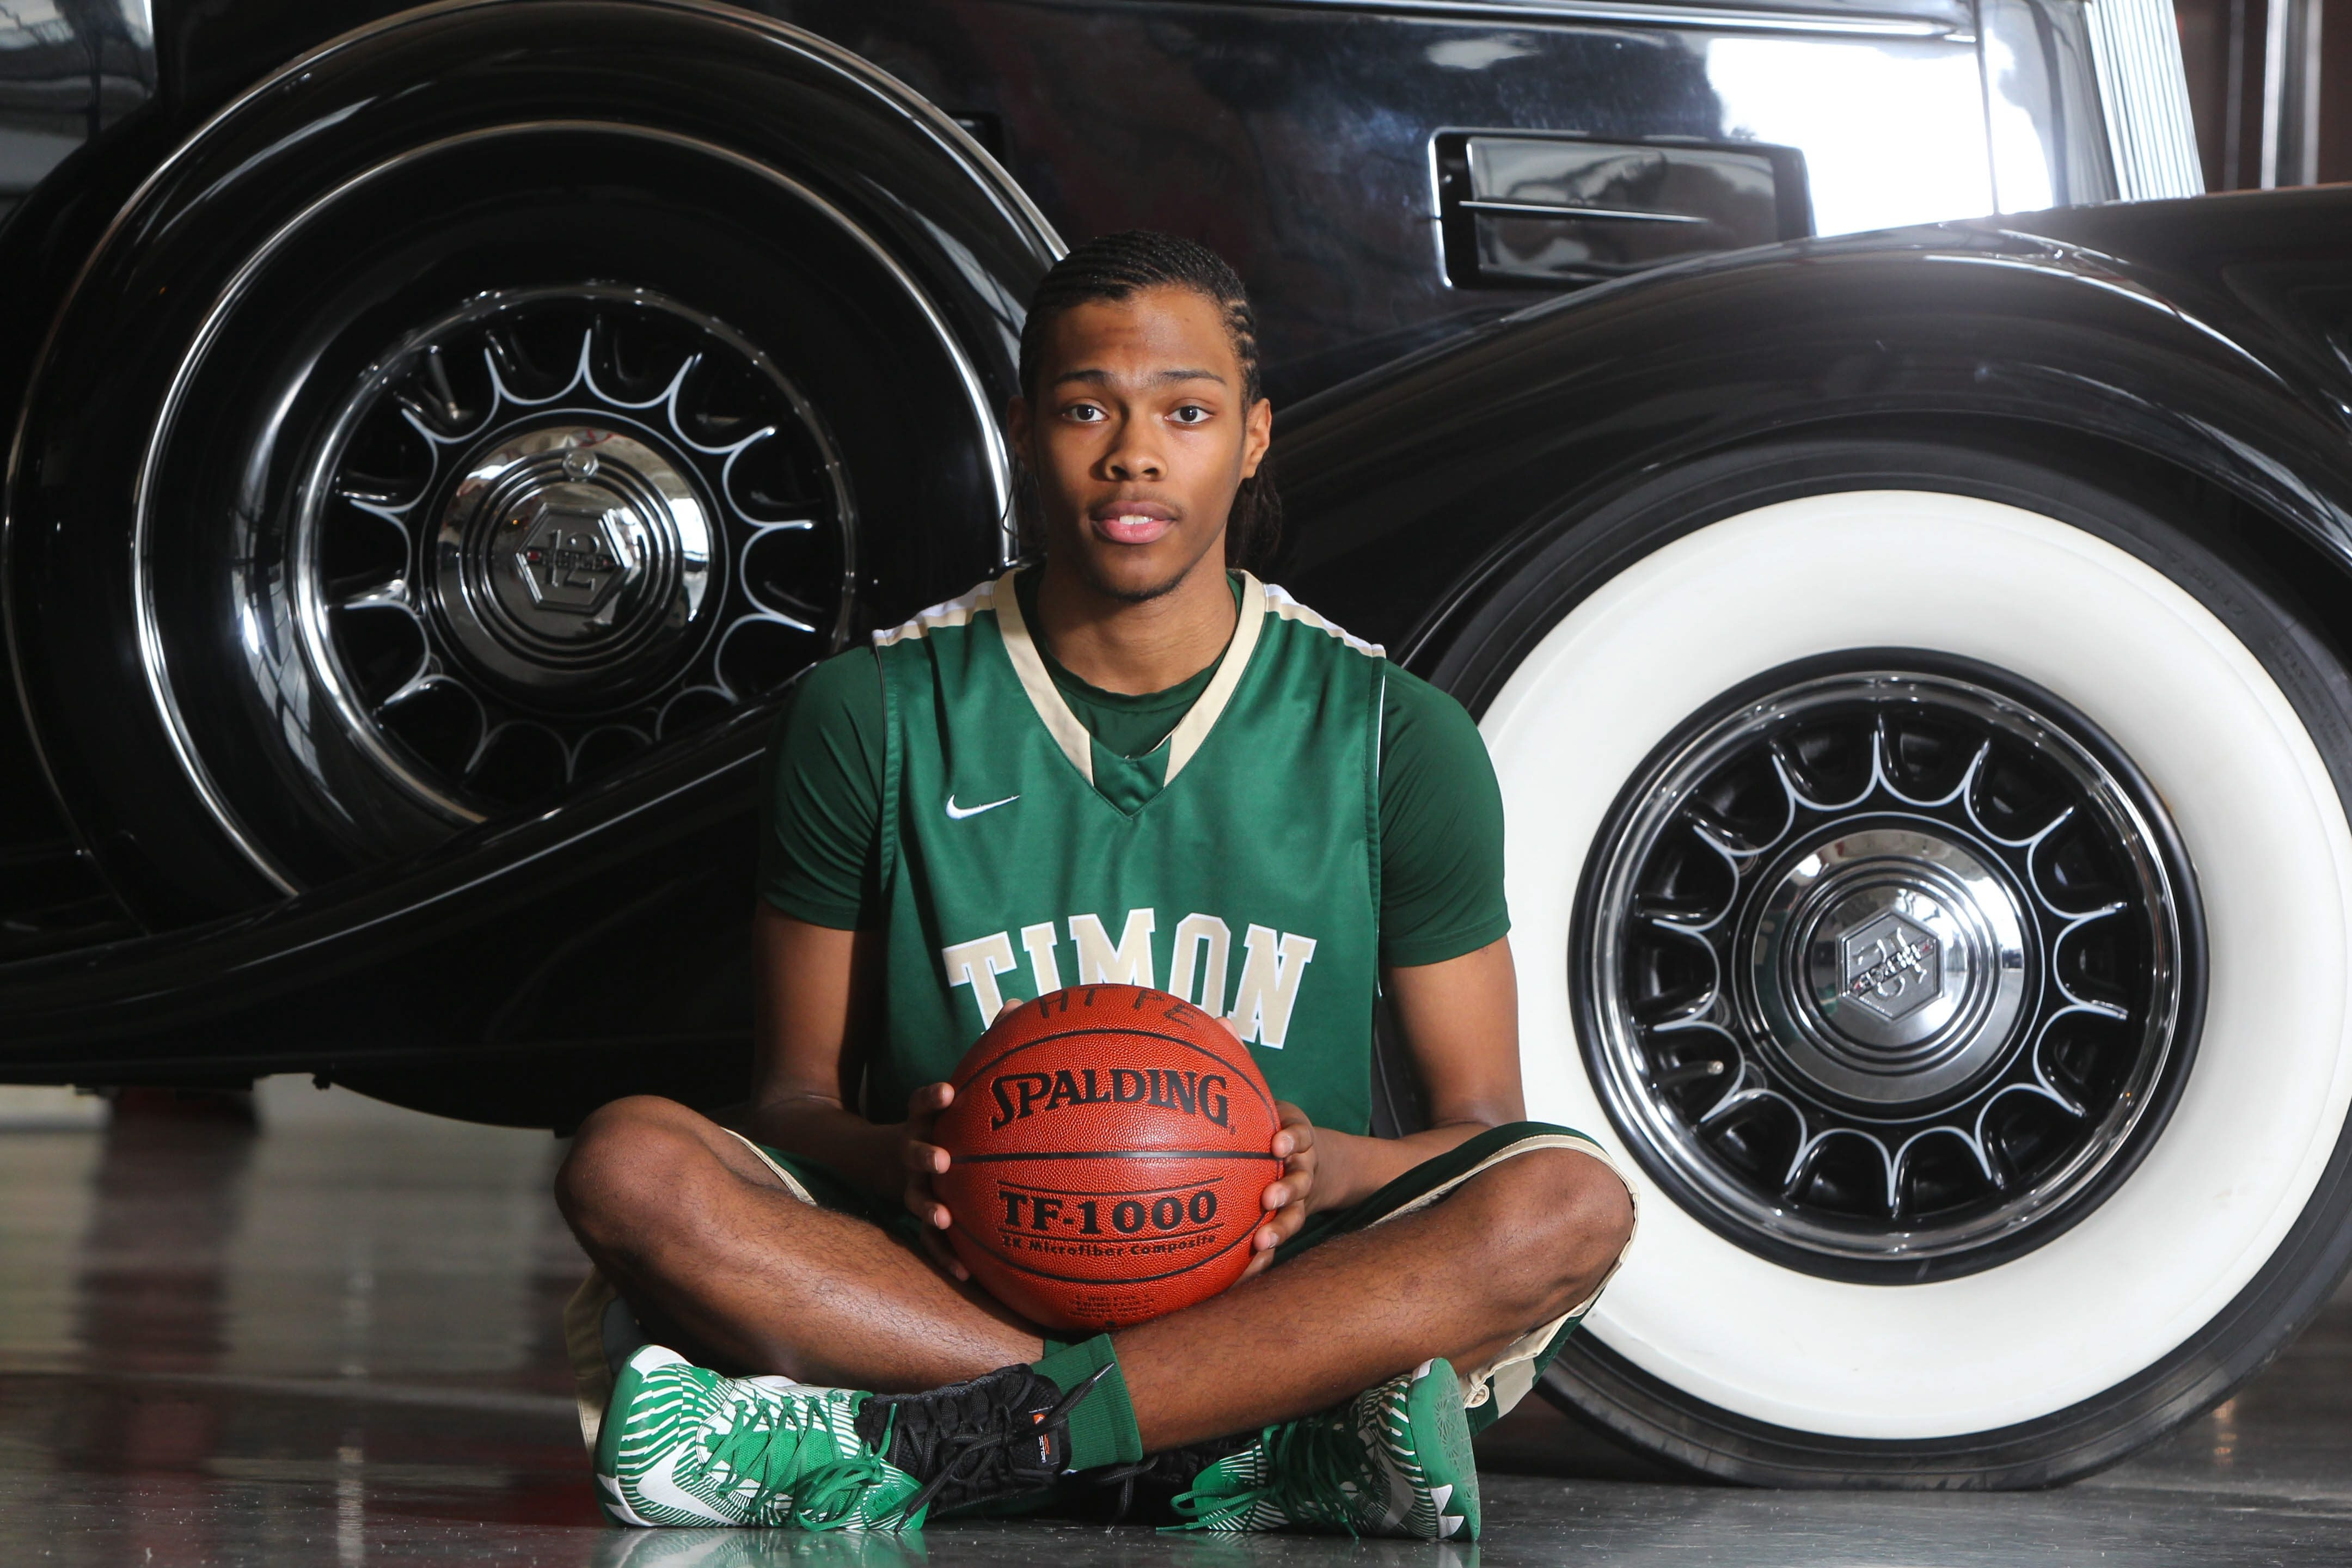 Timon-St. Jude senior Donte Williams of the All WNY Basketball team taken at the Pierce Arrow Museum in Buffalo Tuesday April 1, 2014.  (Mark Mulville/Buffalo News)